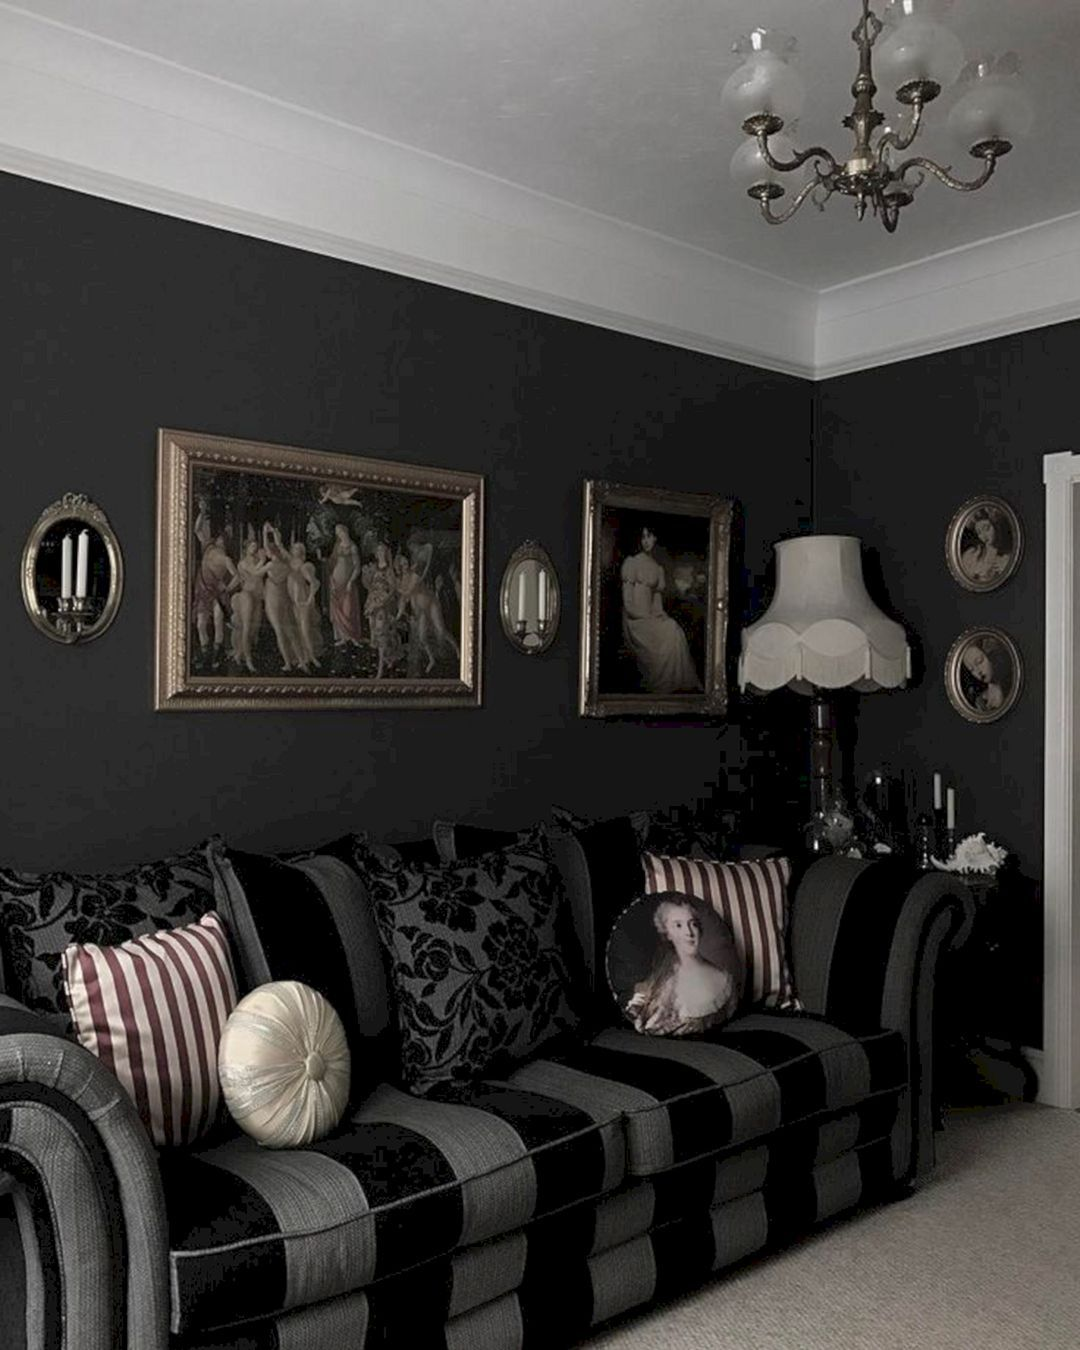 Majestic 40 Best Black And White Interior Design Ideas Https Freshouz Com 40 Best Black And White Interior Design Ideas Home Gothic Living Rooms Home Decor,Simple Embroidery Designs For Neck Blouse